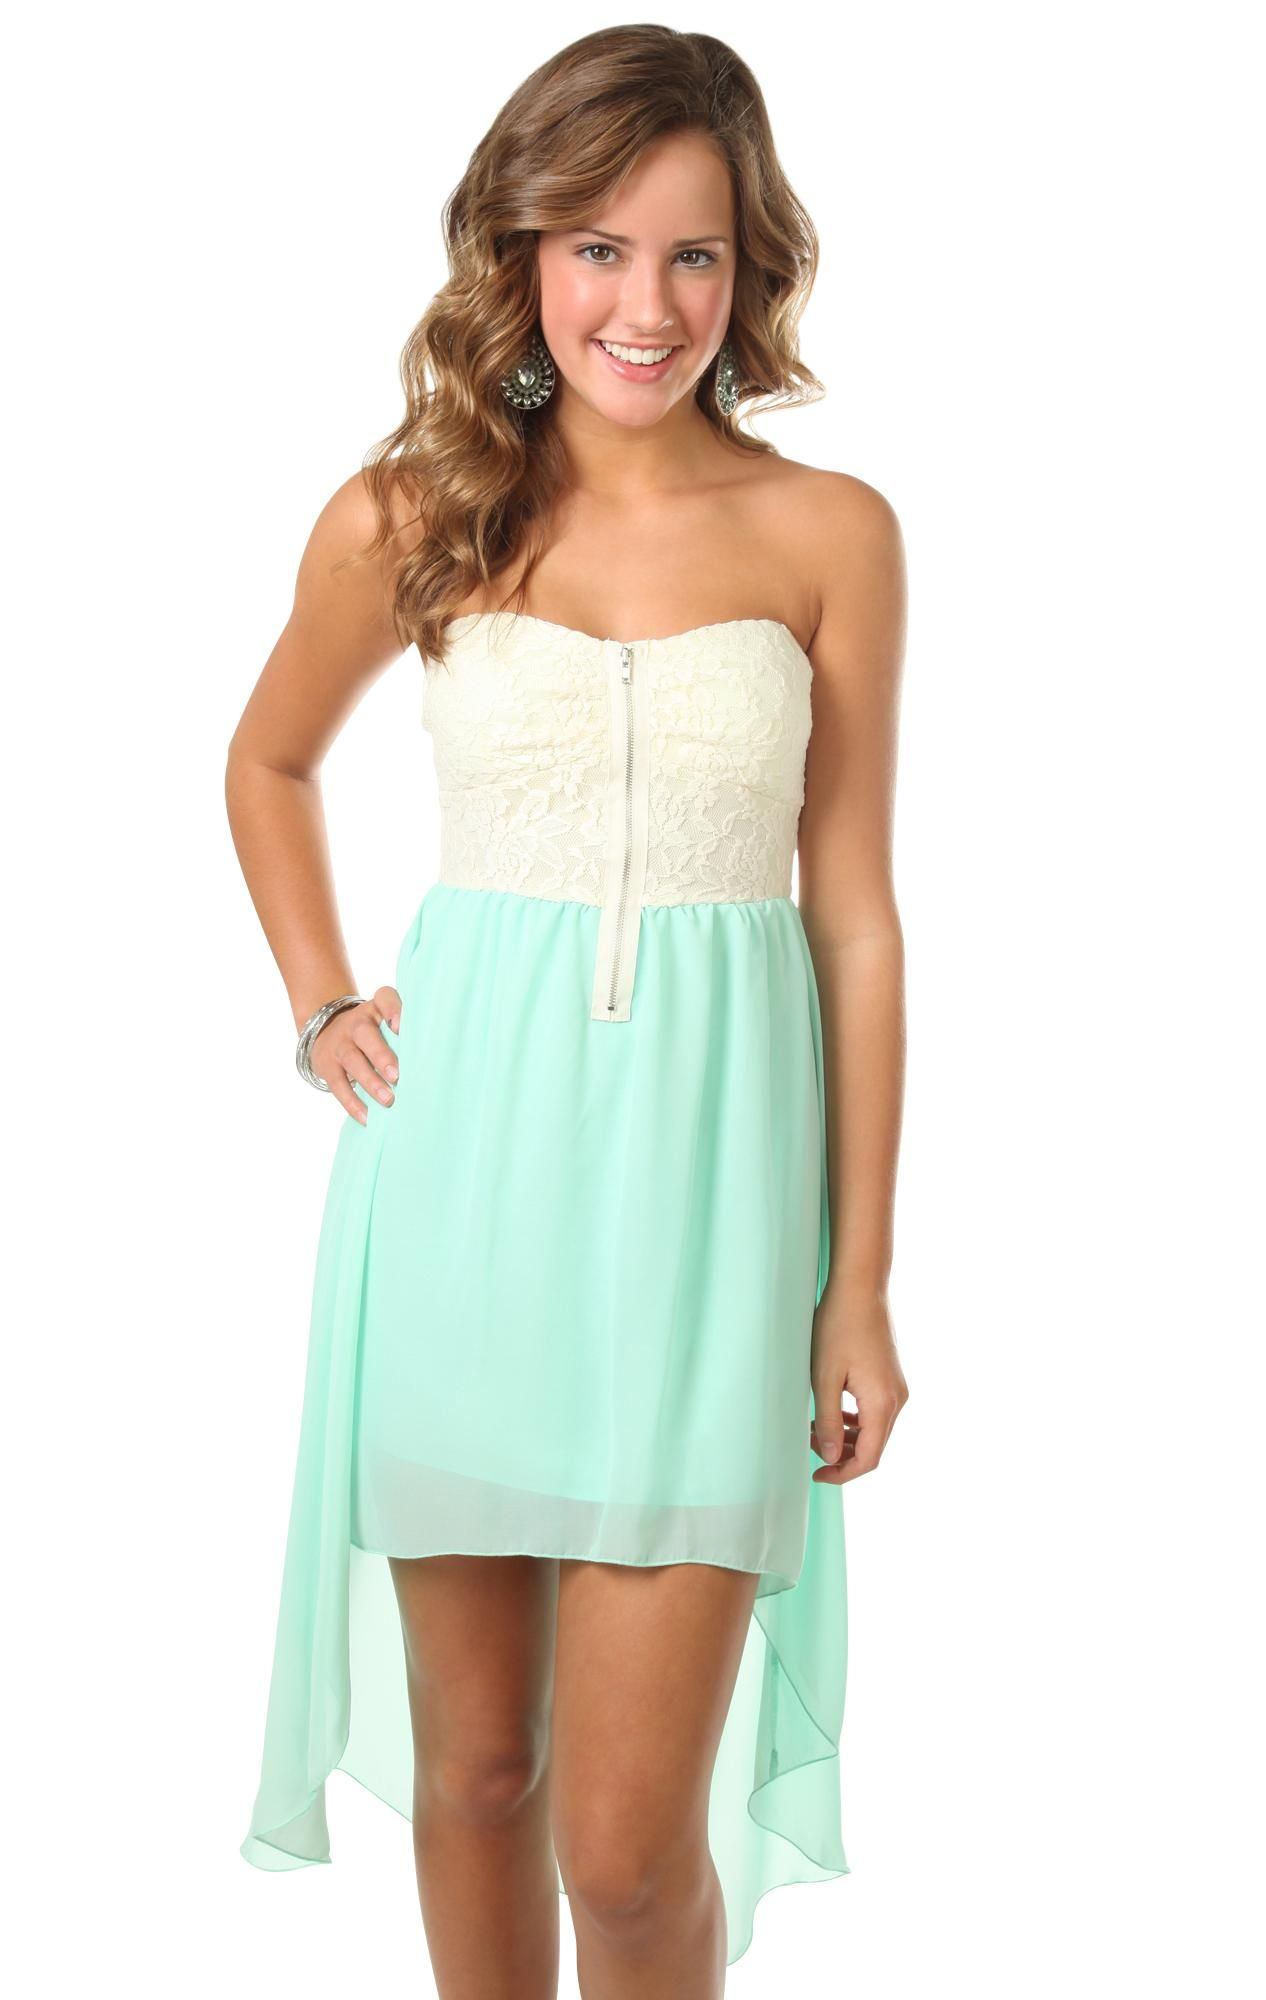 Strapless high low dress with lace bodice th grade dance